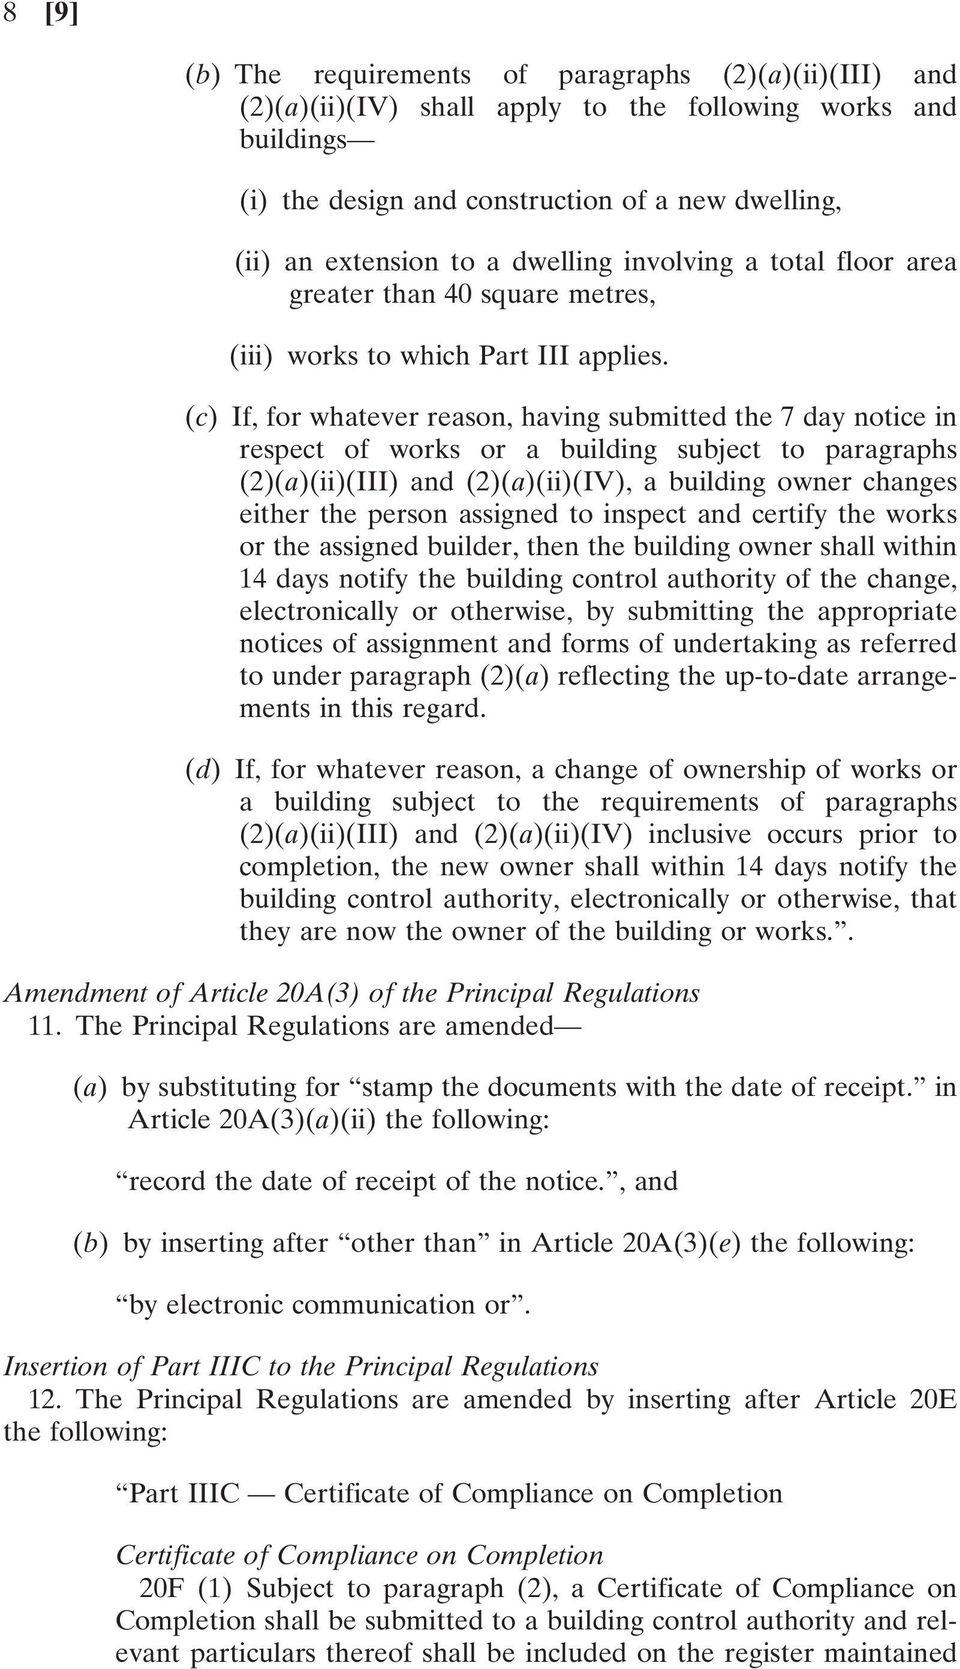 (c) If, for whatever reason, having submitted the 7 day notice in respect of works or a building subject to paragraphs (2)(a)(ii)(III) and (2)(a)(ii)(IV), a building owner changes either the person